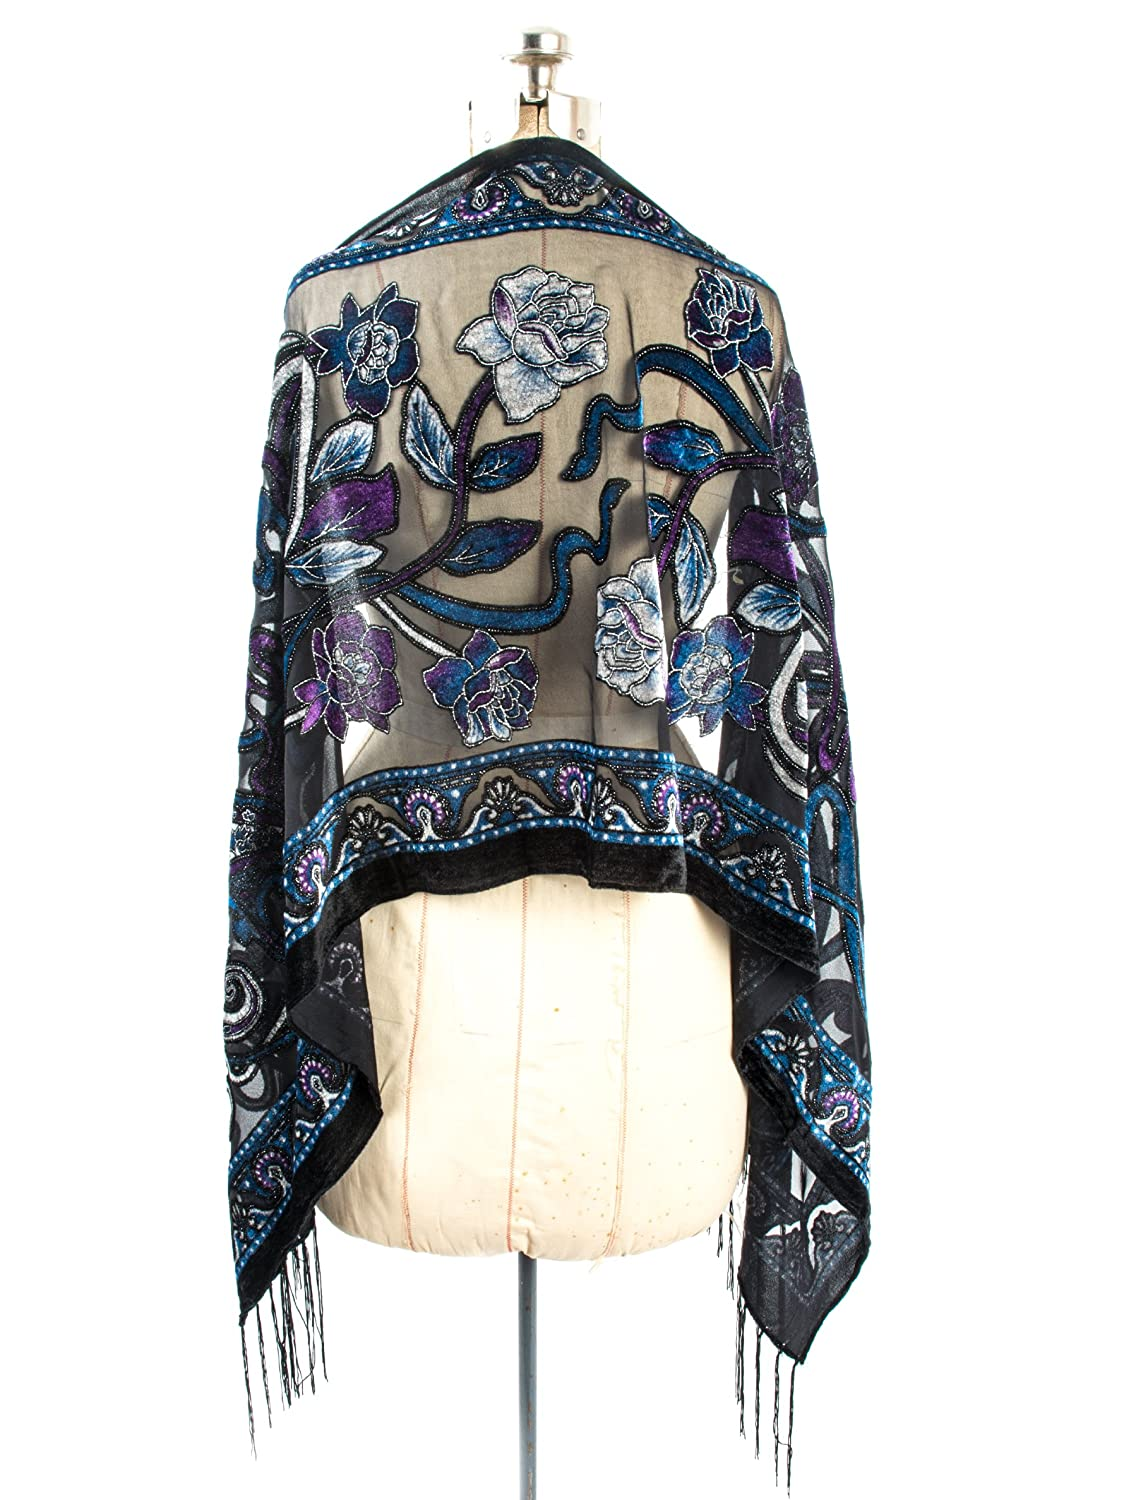 1920s Style Shawls, Wraps, Scarves Bohomonde Muriel Scarf Silk Art Nouveau Print Velvet Burnout Scarf with Fringe Ends $17.95 AT vintagedancer.com